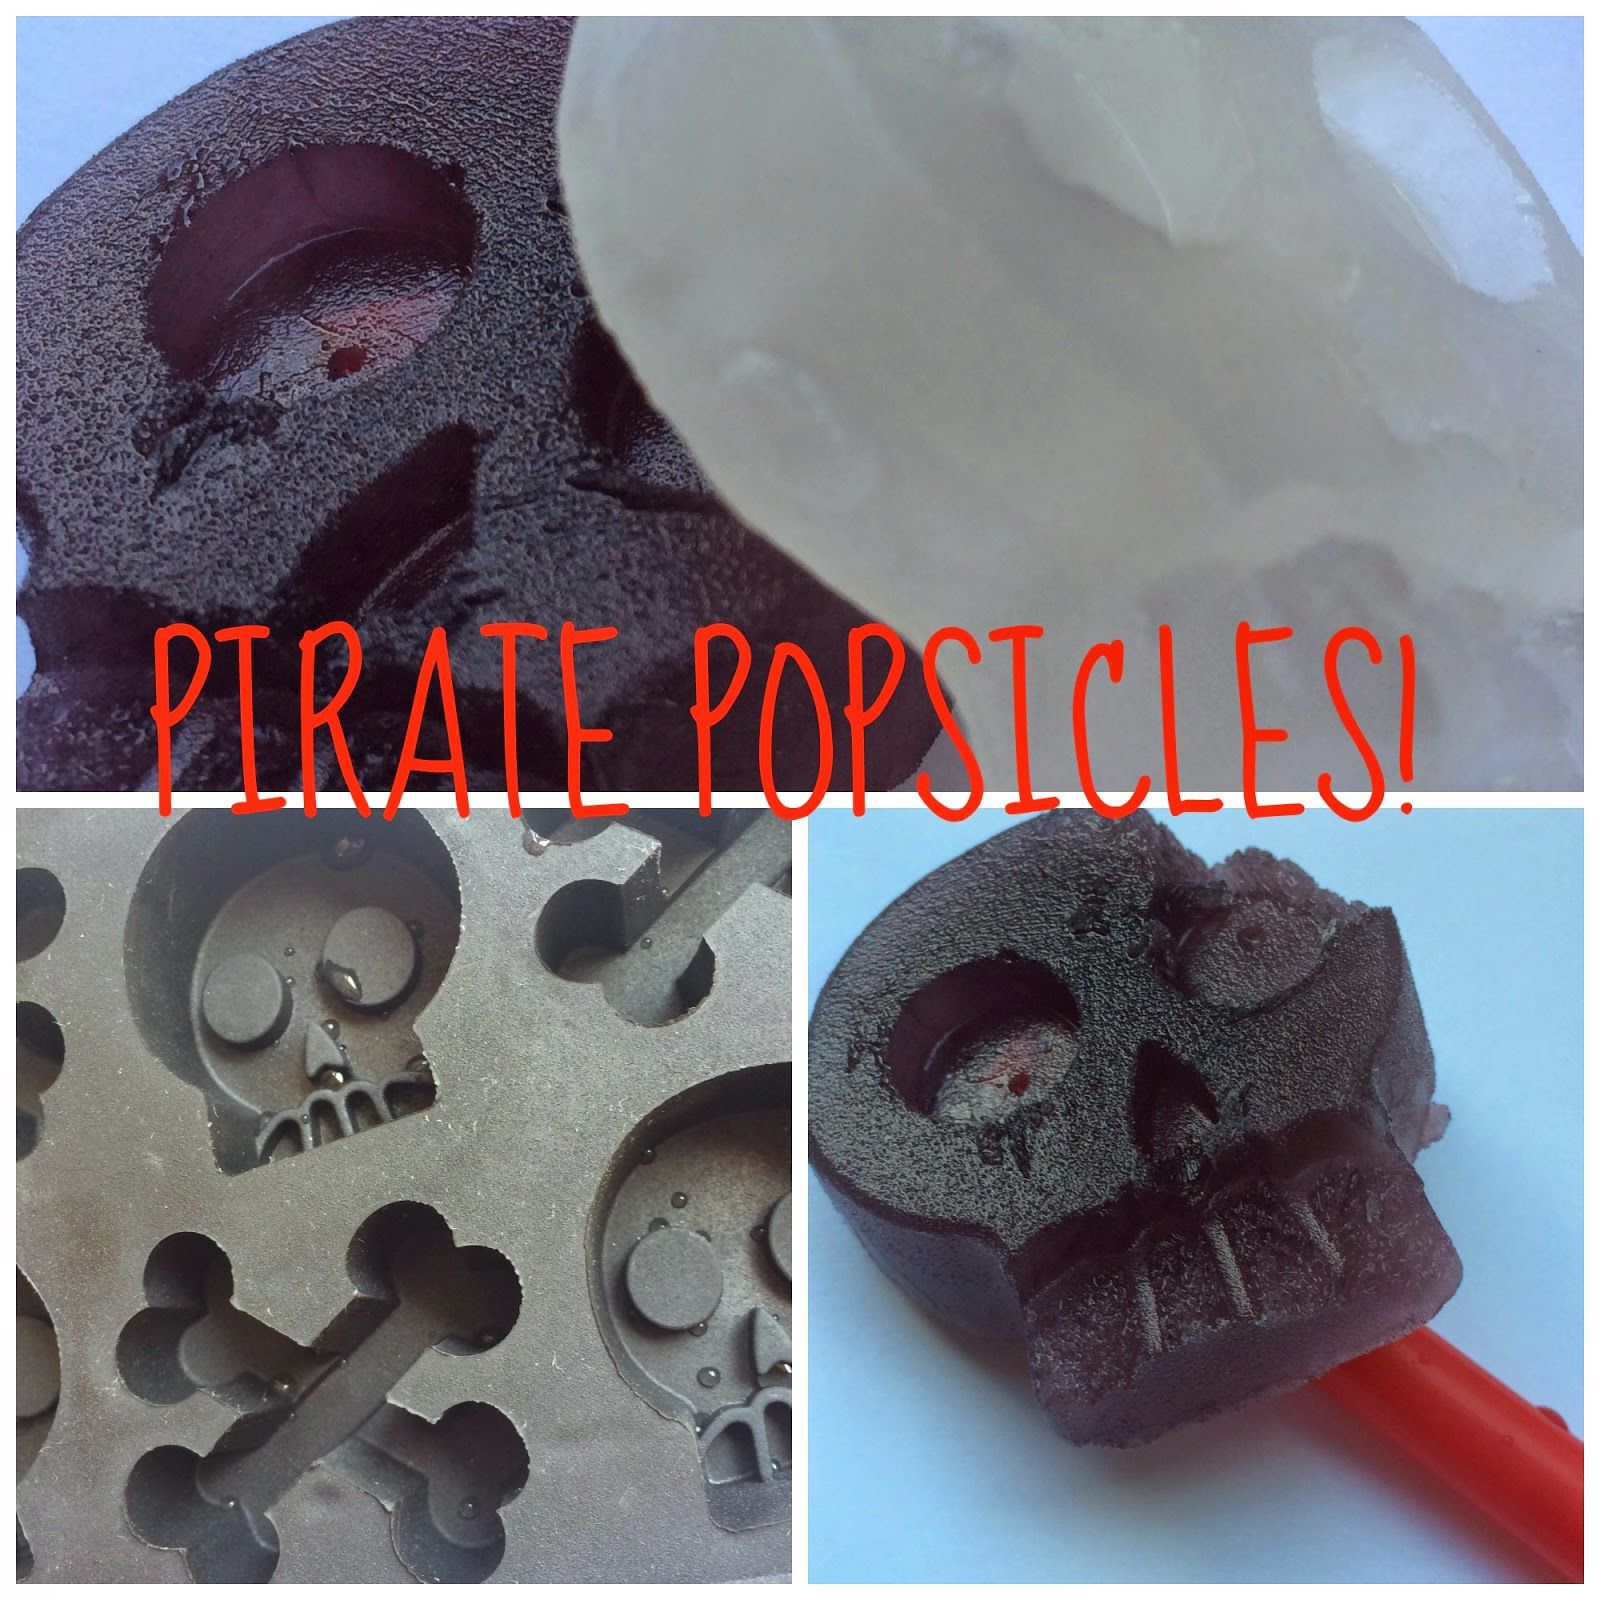 Pirate popsicles